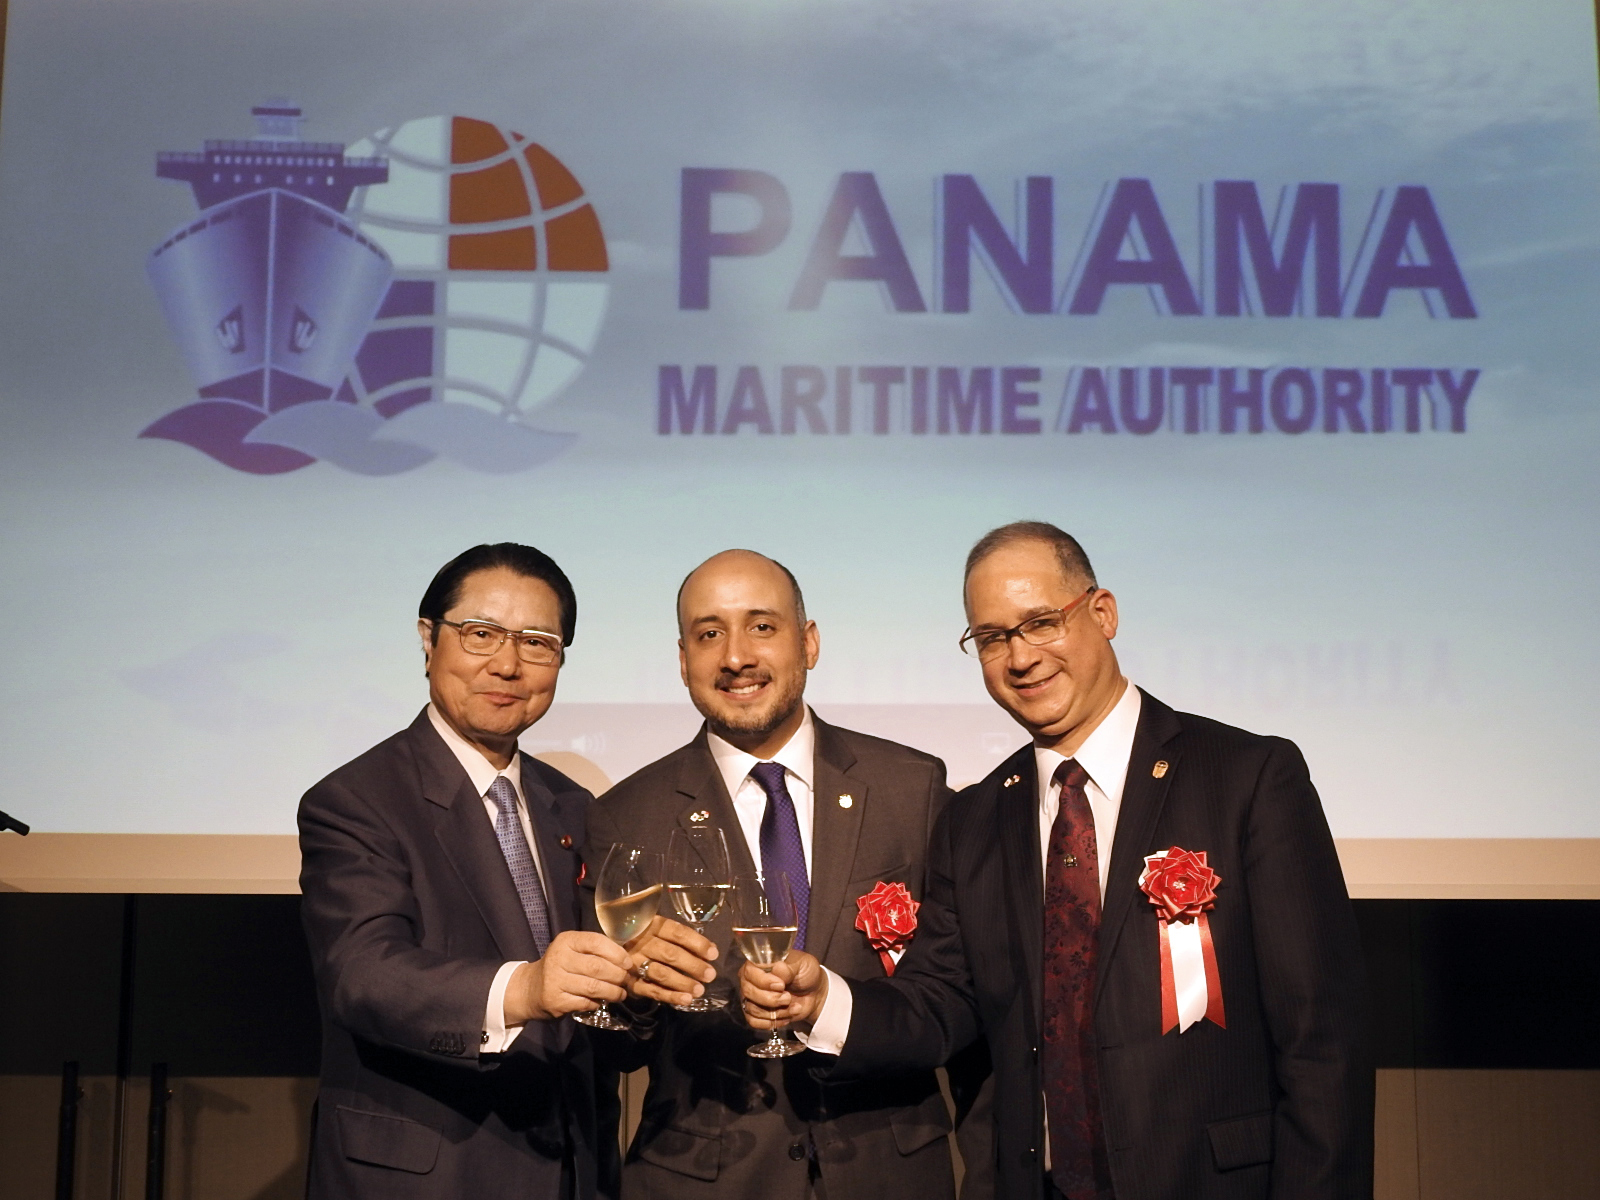 Minister for Maritime Affairs Jorge Barakat (center)raises a toast with Seishiro Eto (left), president of the Panama-Japan Inter-Parliamentary League, and Ambassador of Panama to Japan Ritter N. Diaz, during a reception at the Palace Hotel Tokyo on May 22. |  COURTESY OF PANAMA EMBASSY